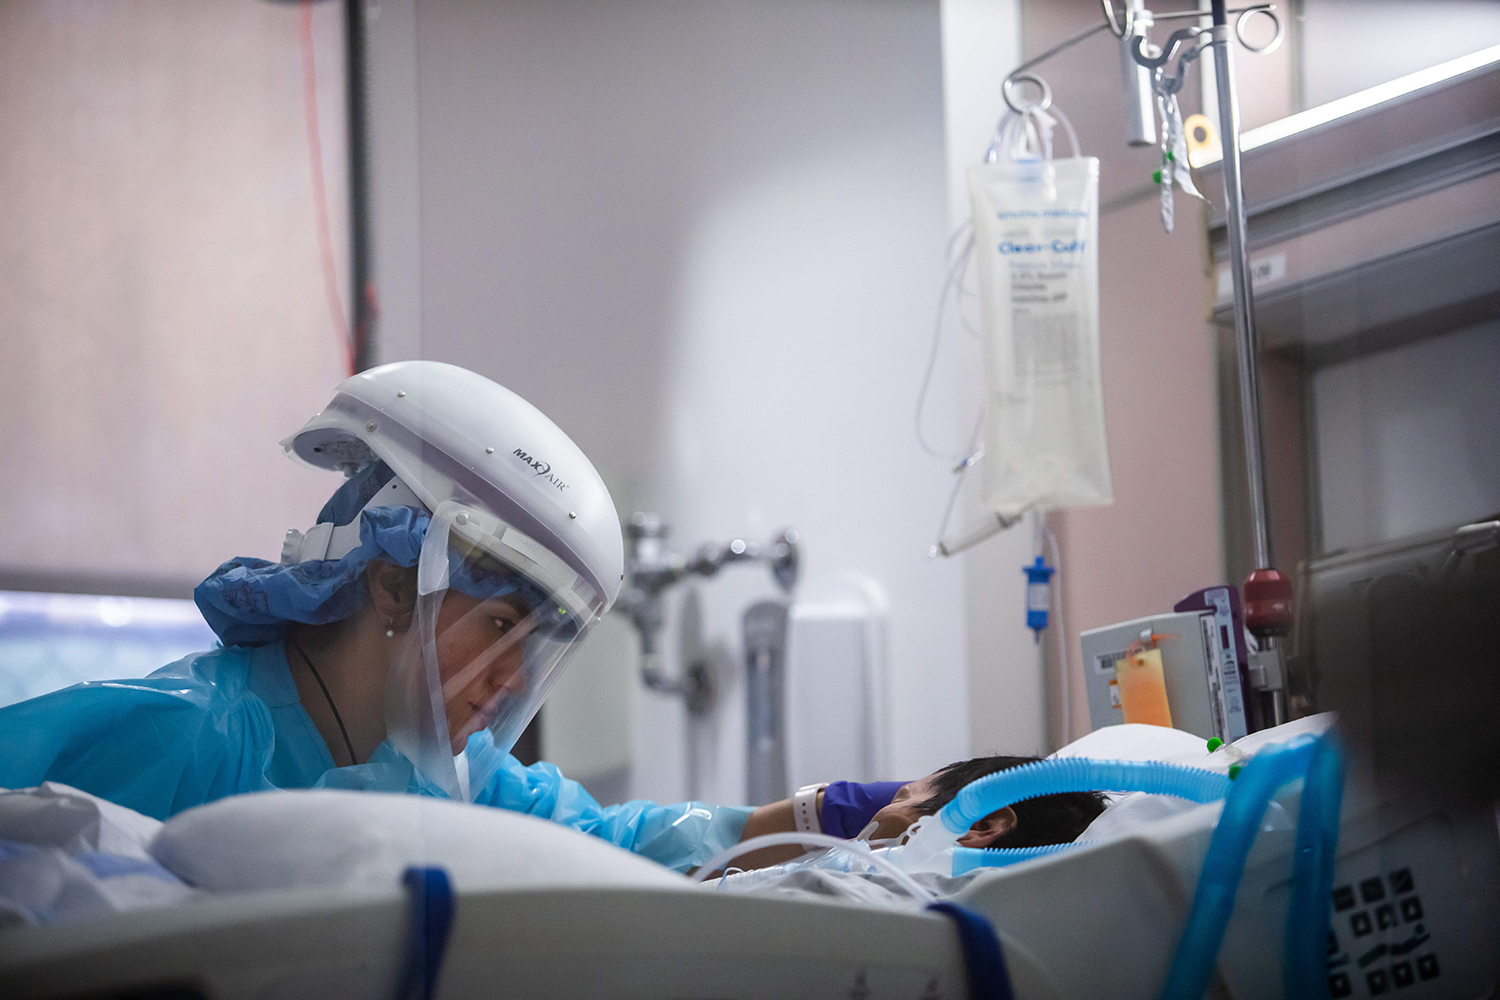 Yeni Sandoval, a registered nurse, cares for a COVID-19 patient in the ICU of Providence Cedars-Sinai Tarzana Medical Center in Tarzana, California, on Jan. 3. APU GOMES/AFP via Getty Images